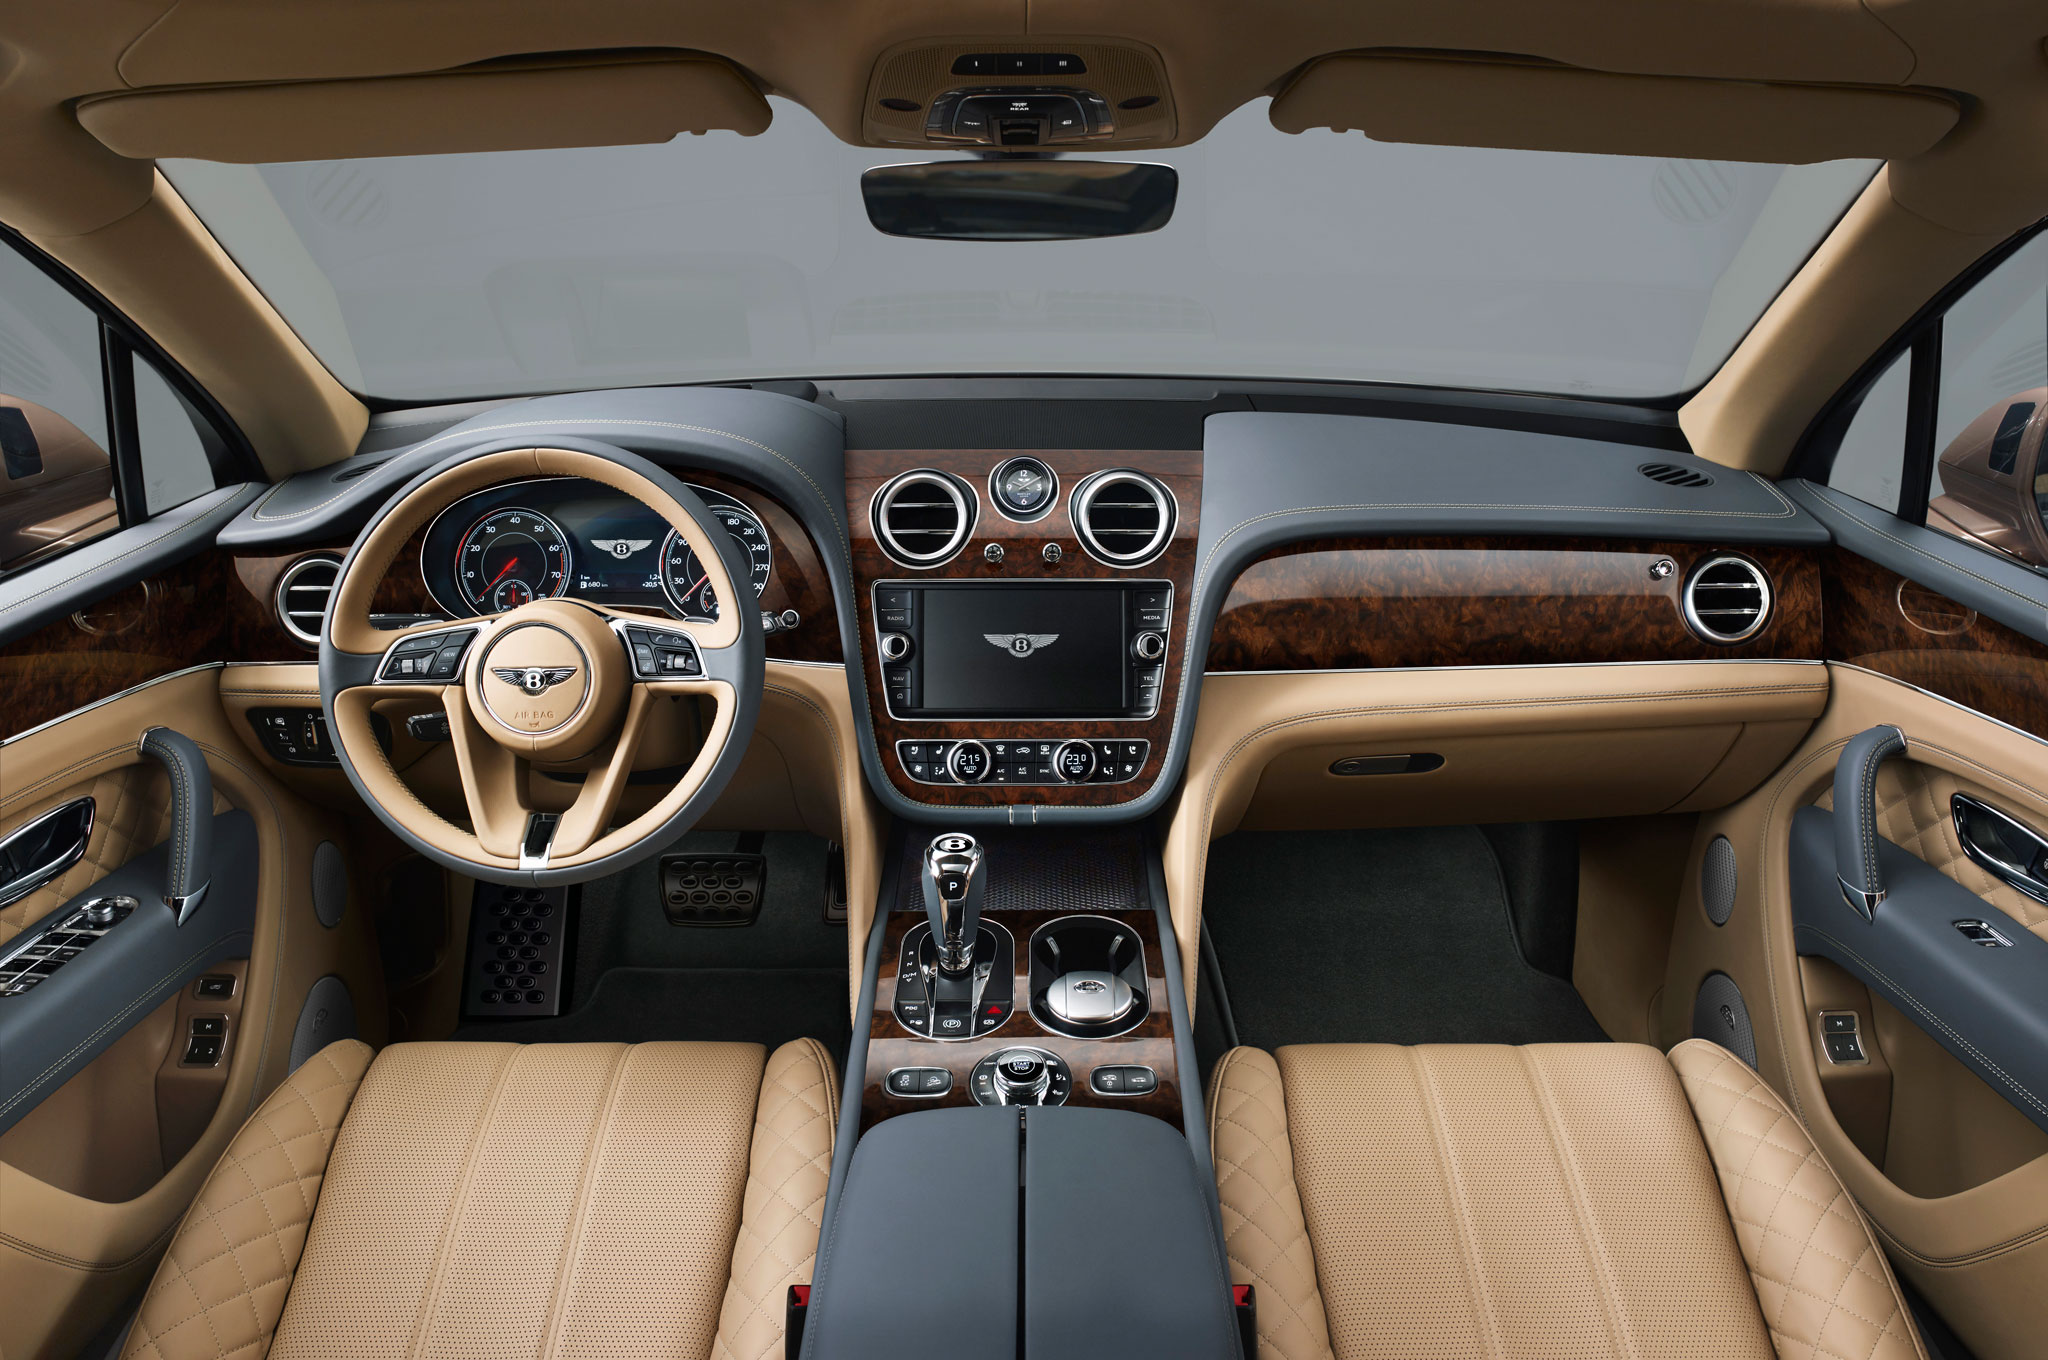 2017 Bentley Bentayga Interior Preview (Photo 6 of 16)